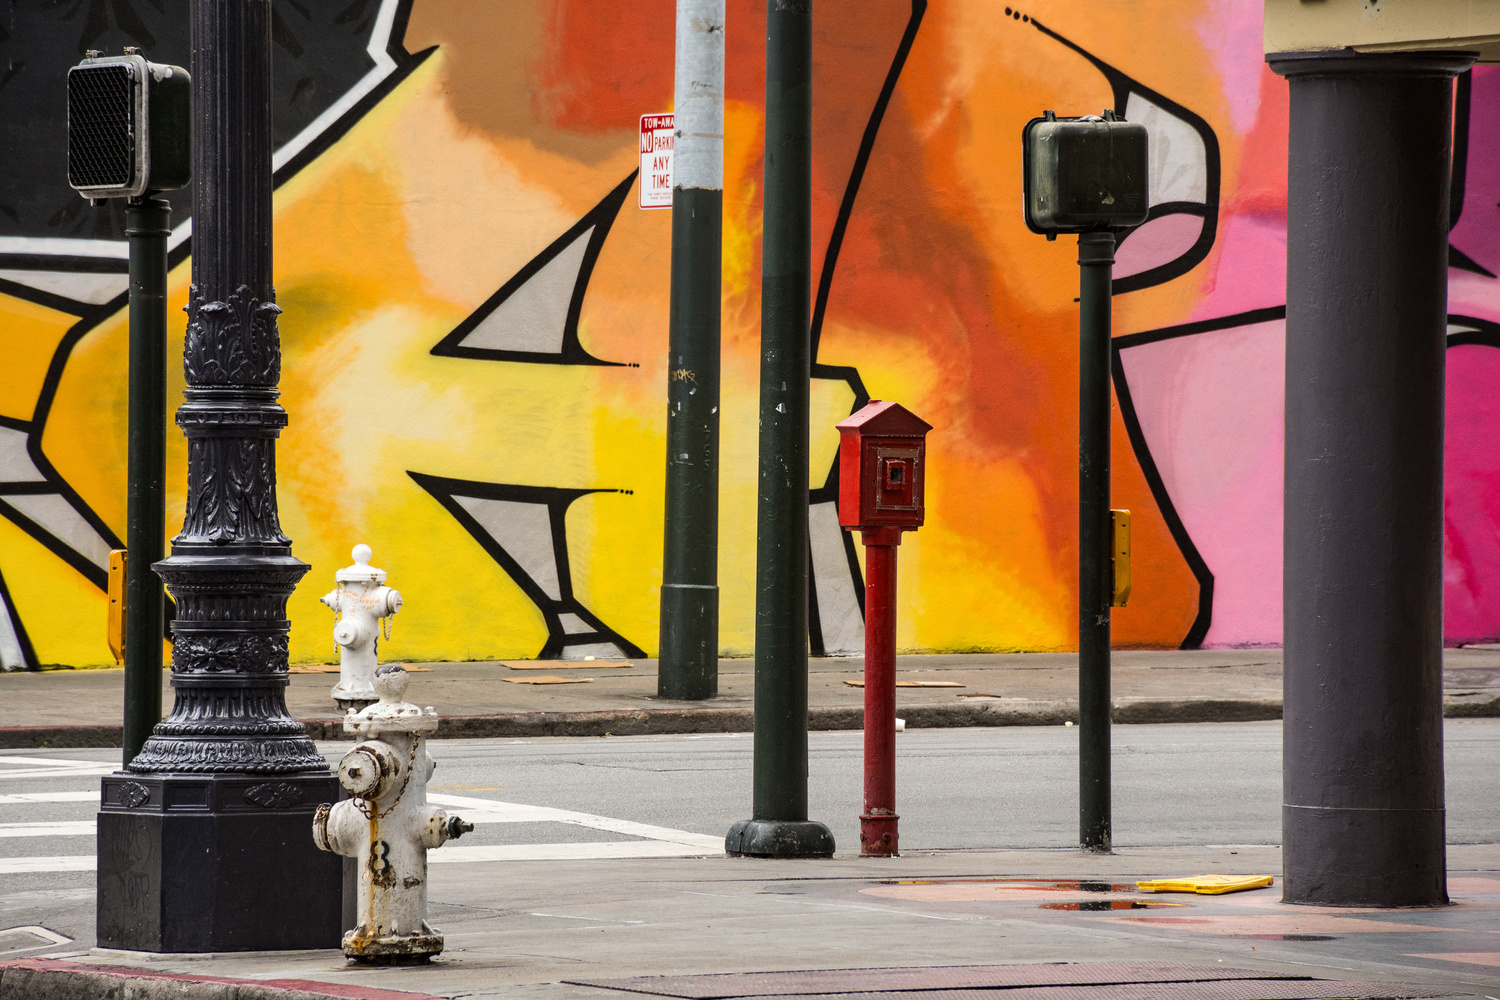 Poles and Hydrants - San Francisco, California by Mike Weiser